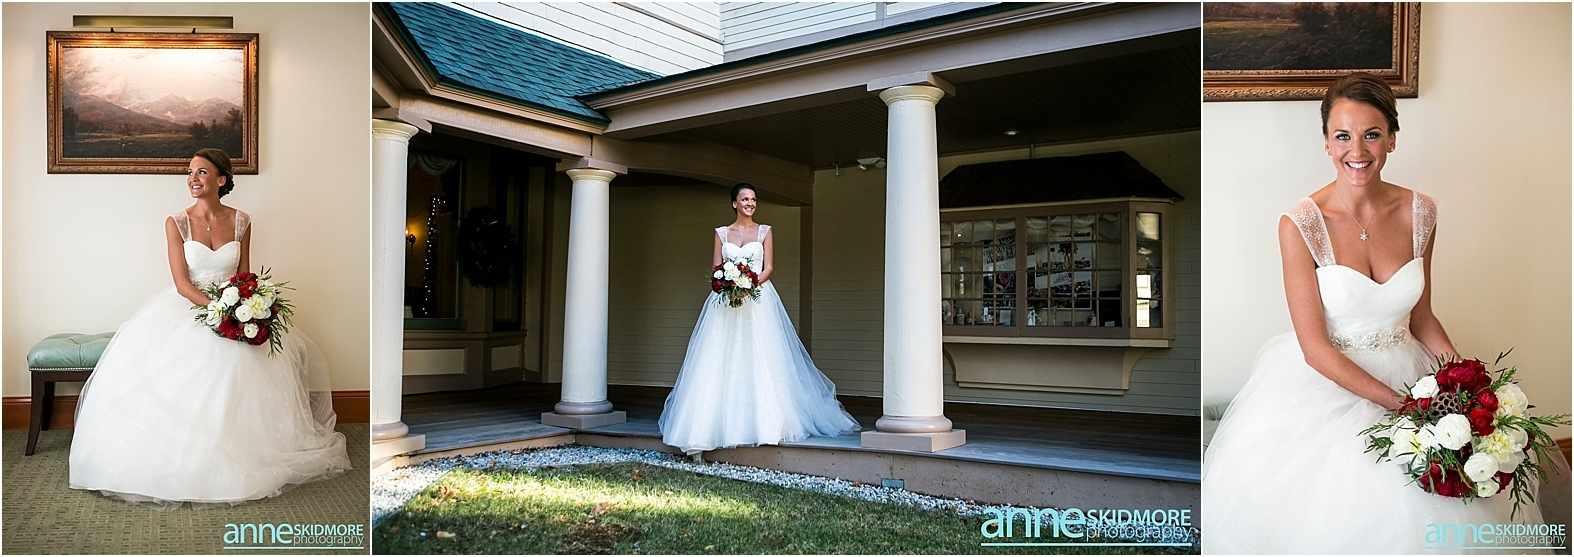 Wentworth_Inn_Wedding_015